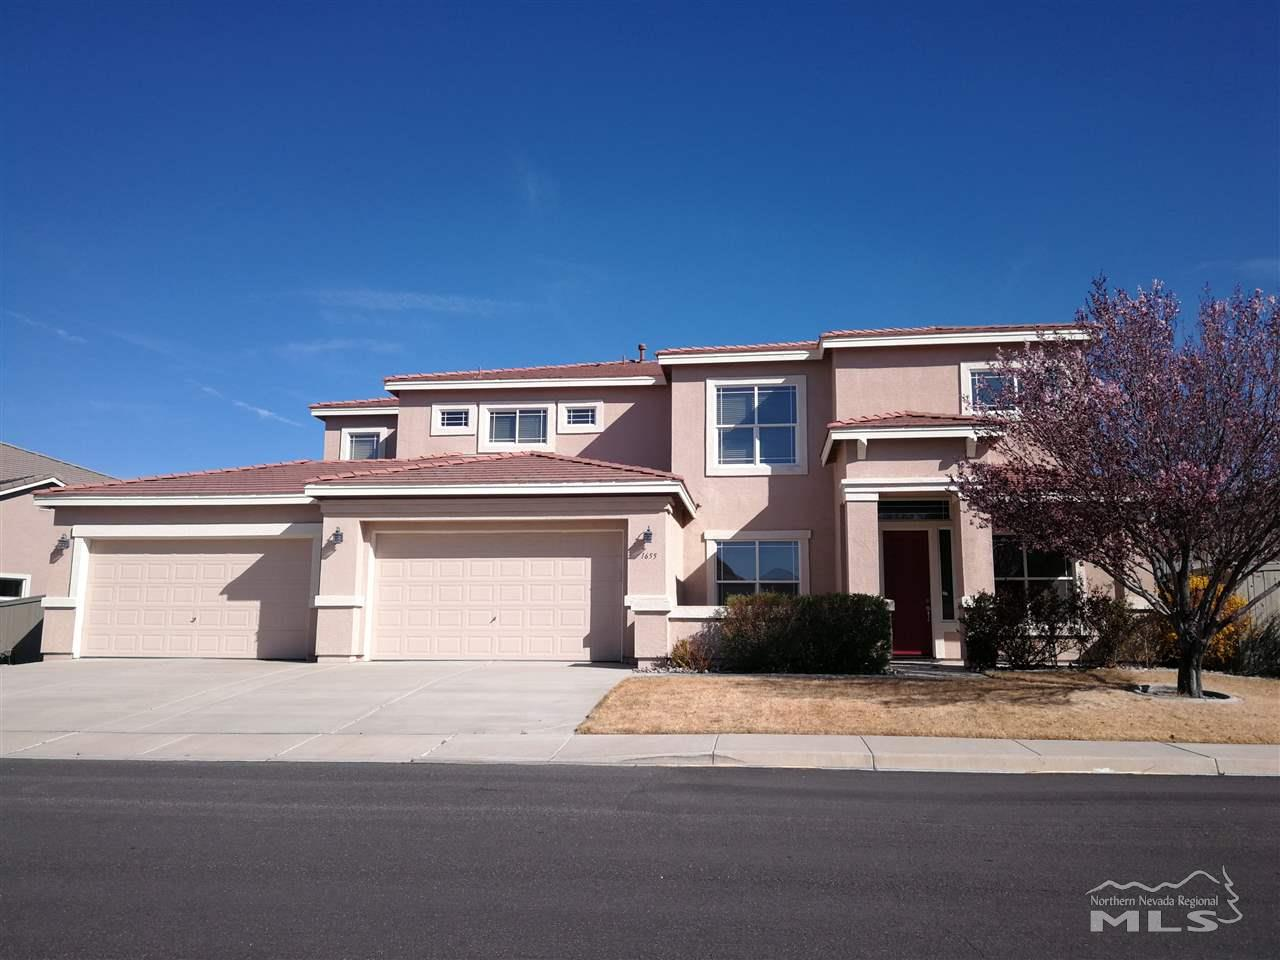 Image for 1655 Crater Ct., Reno, NV 89521